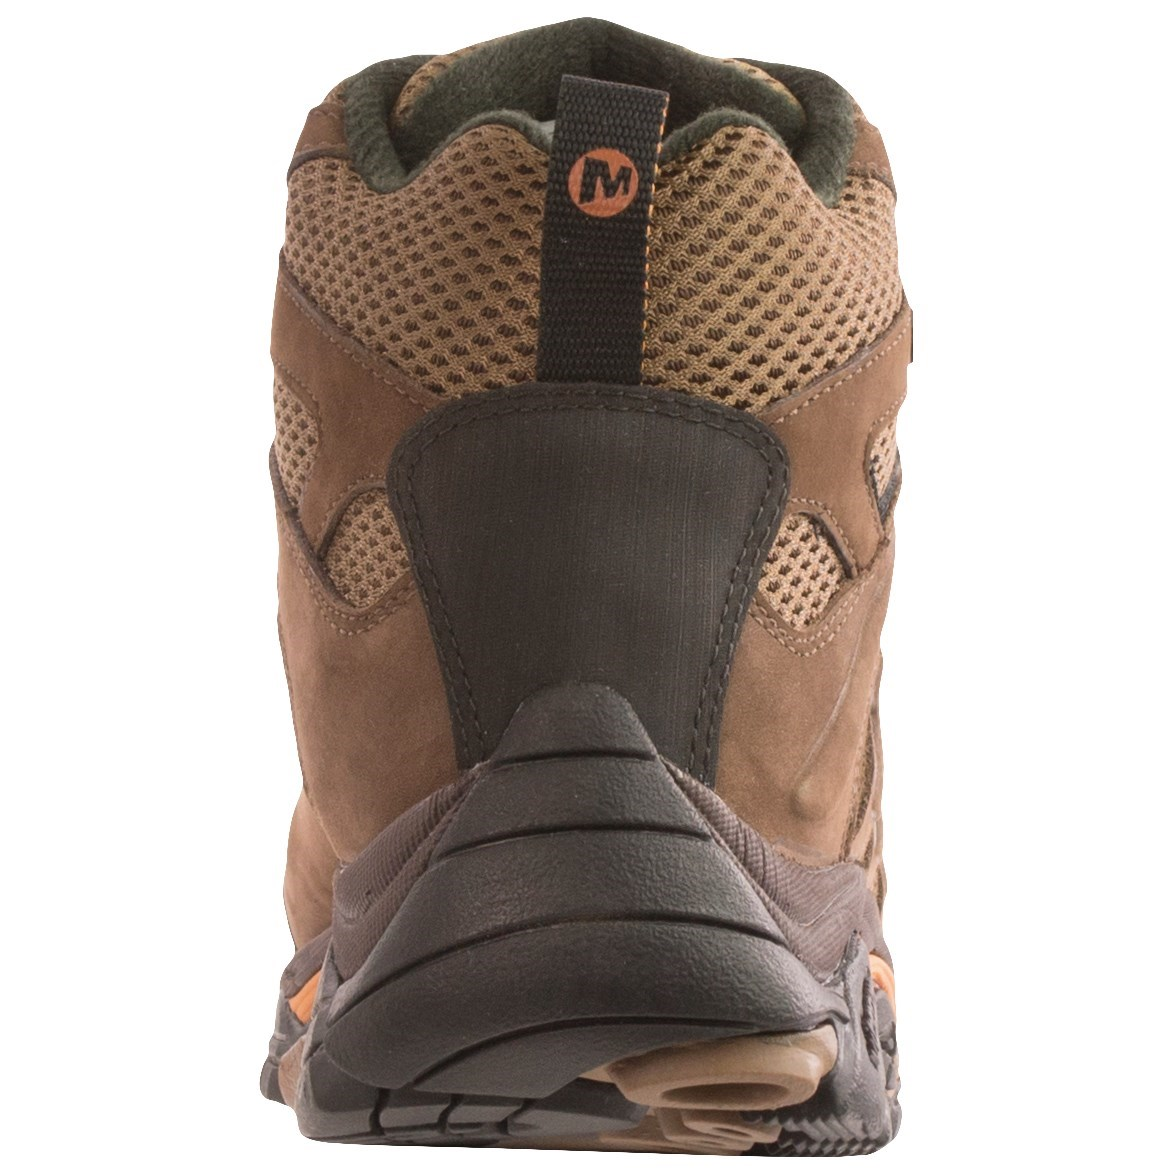 Leather Hiking Boots Men Images Creative Decorating Ideas